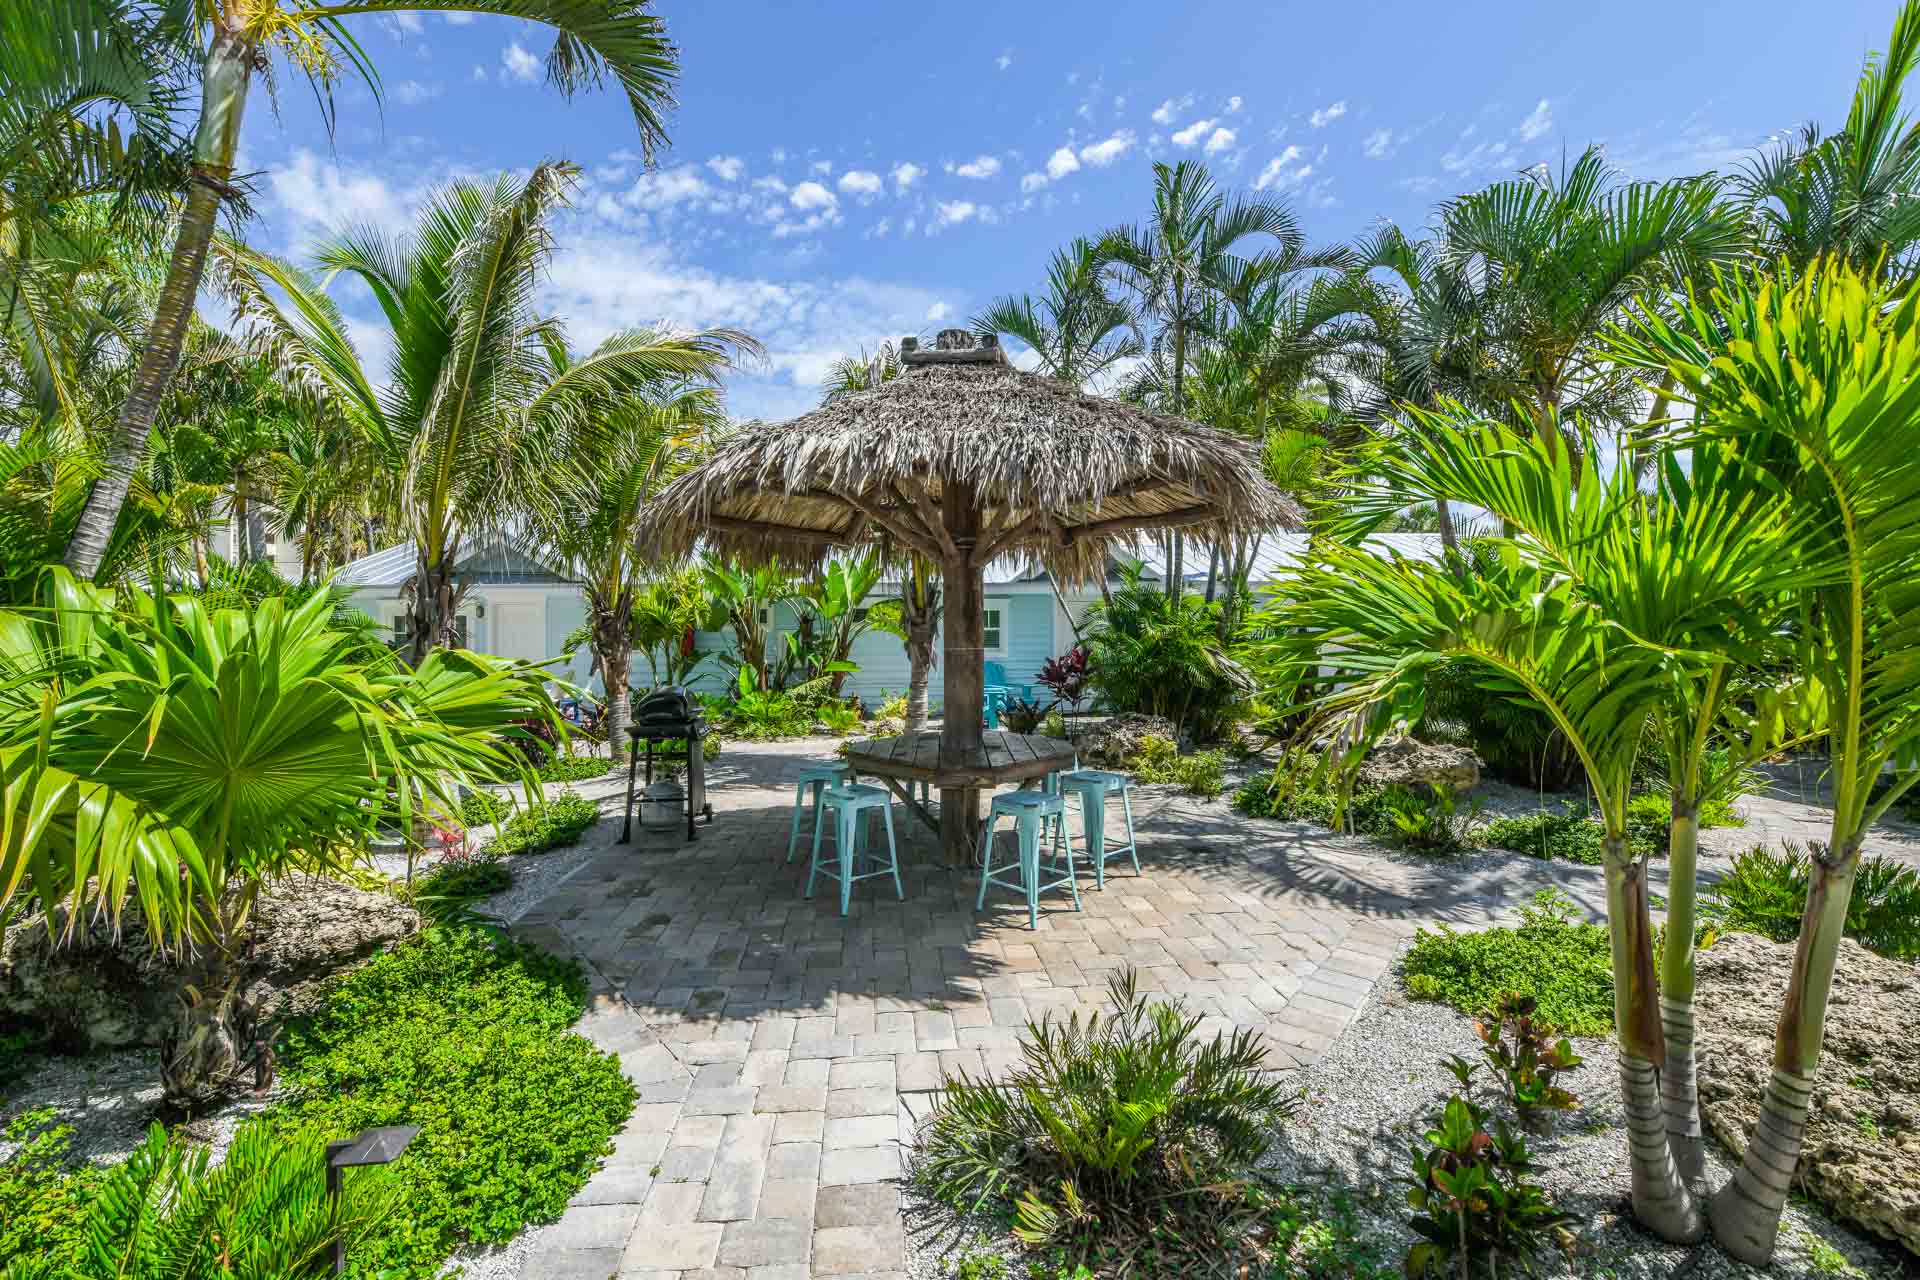 Outdoor Seating - Tiki Hut - Grills - Privacy